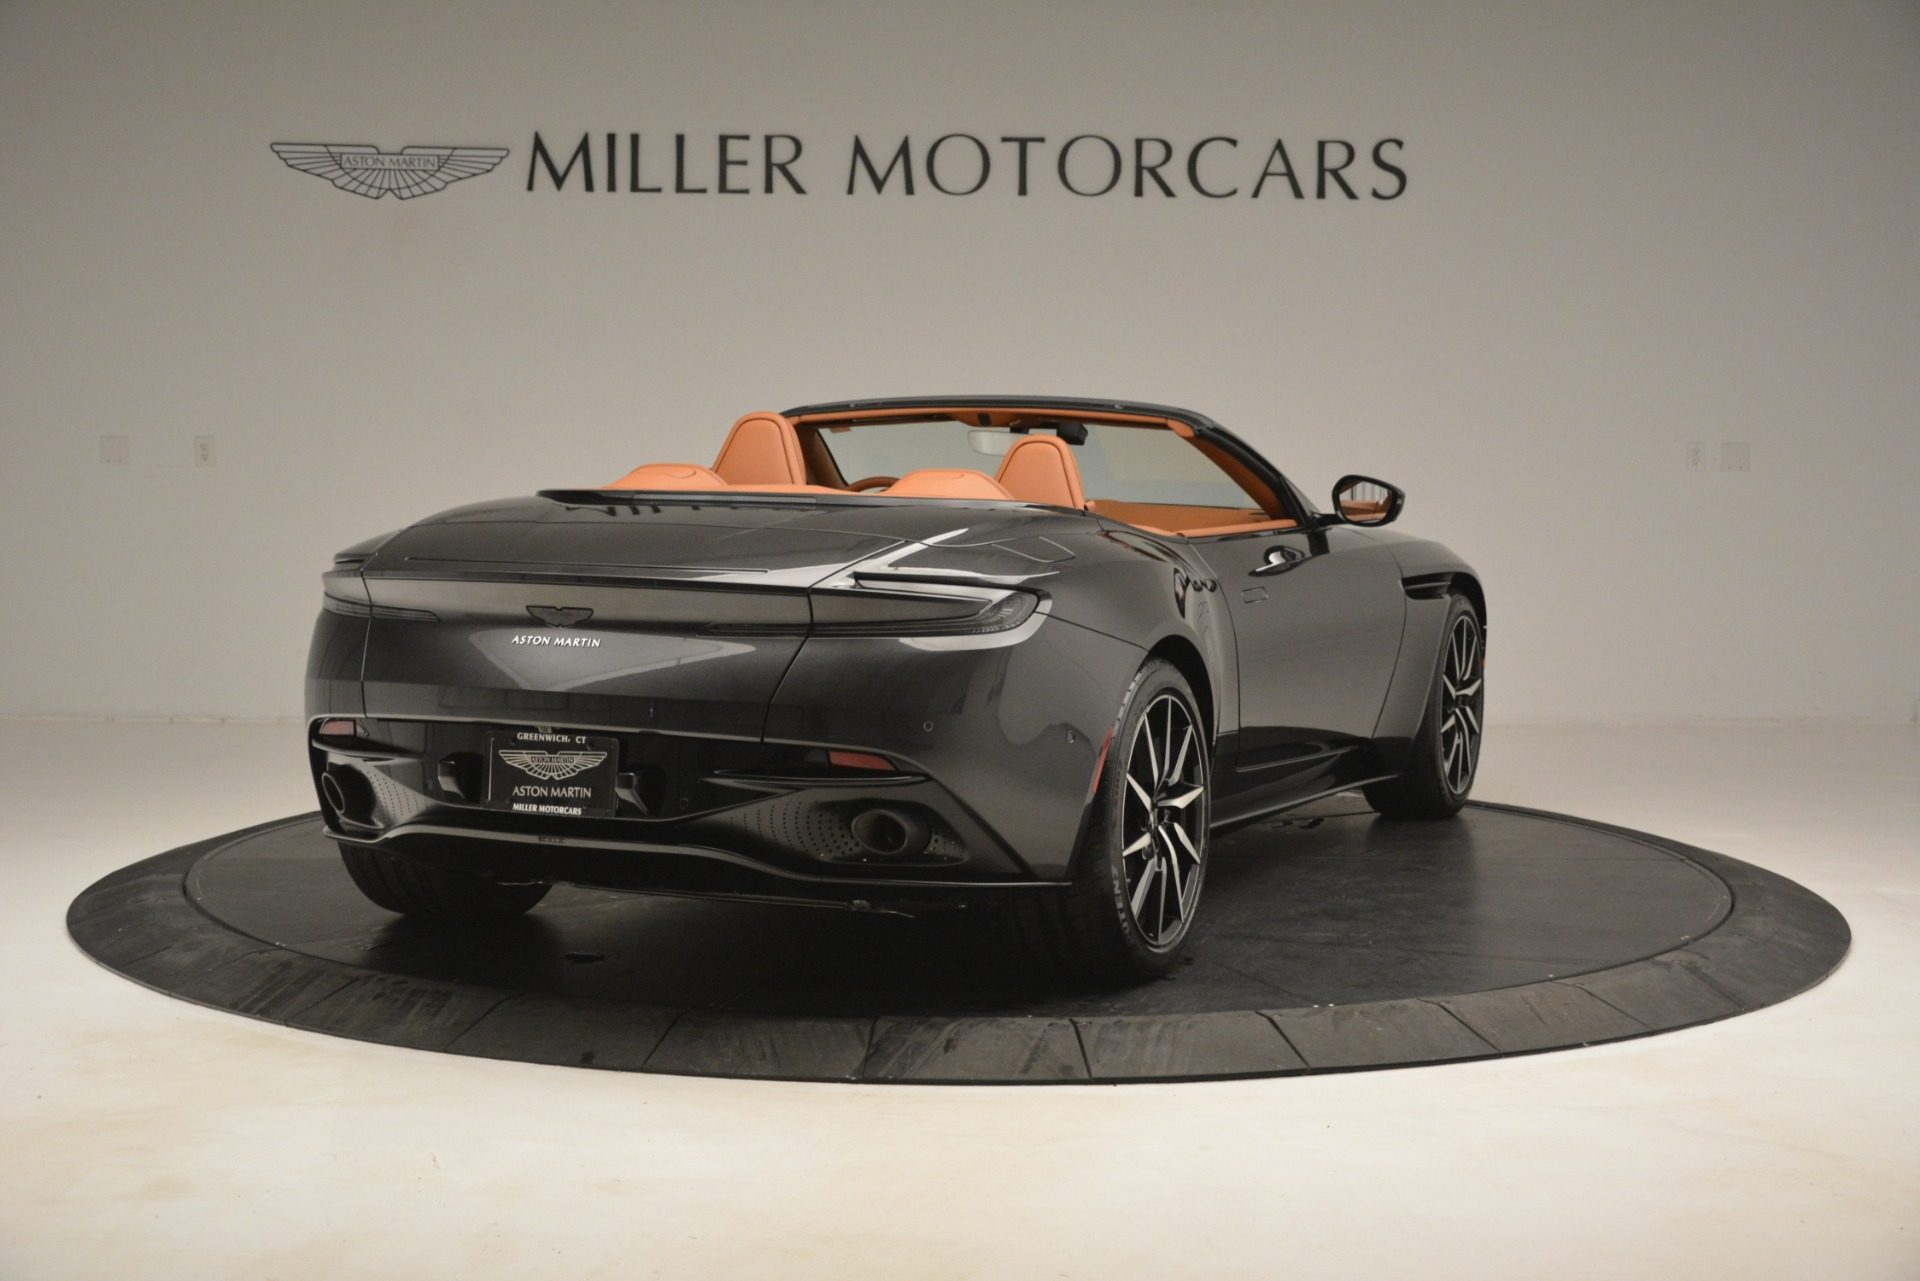 Used 2019 Aston Martin DB11 V8 Volante For Sale In Westport, CT 3434_p6